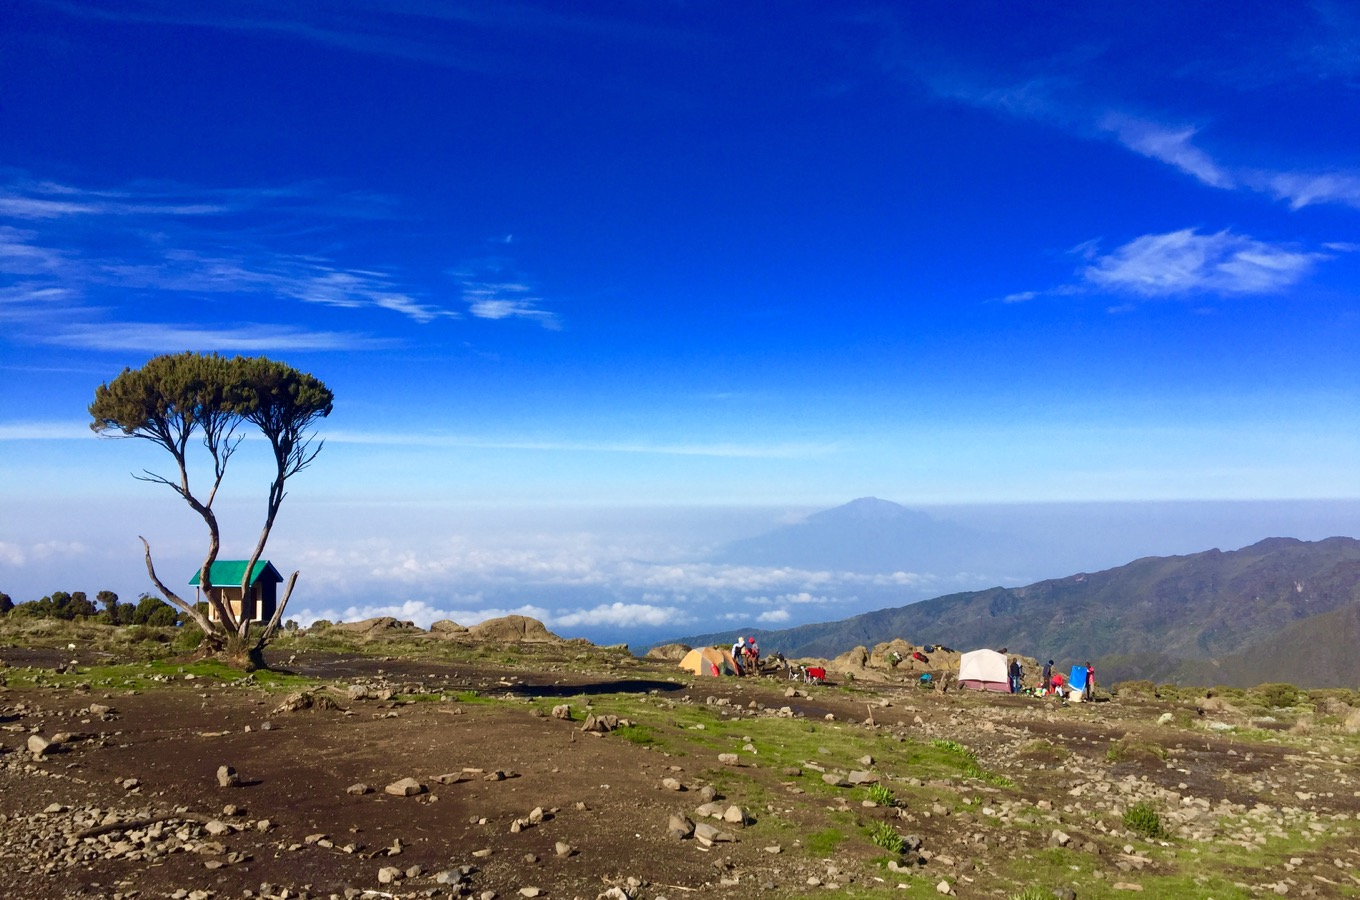 View from Kilimanjaro towards Tanzania